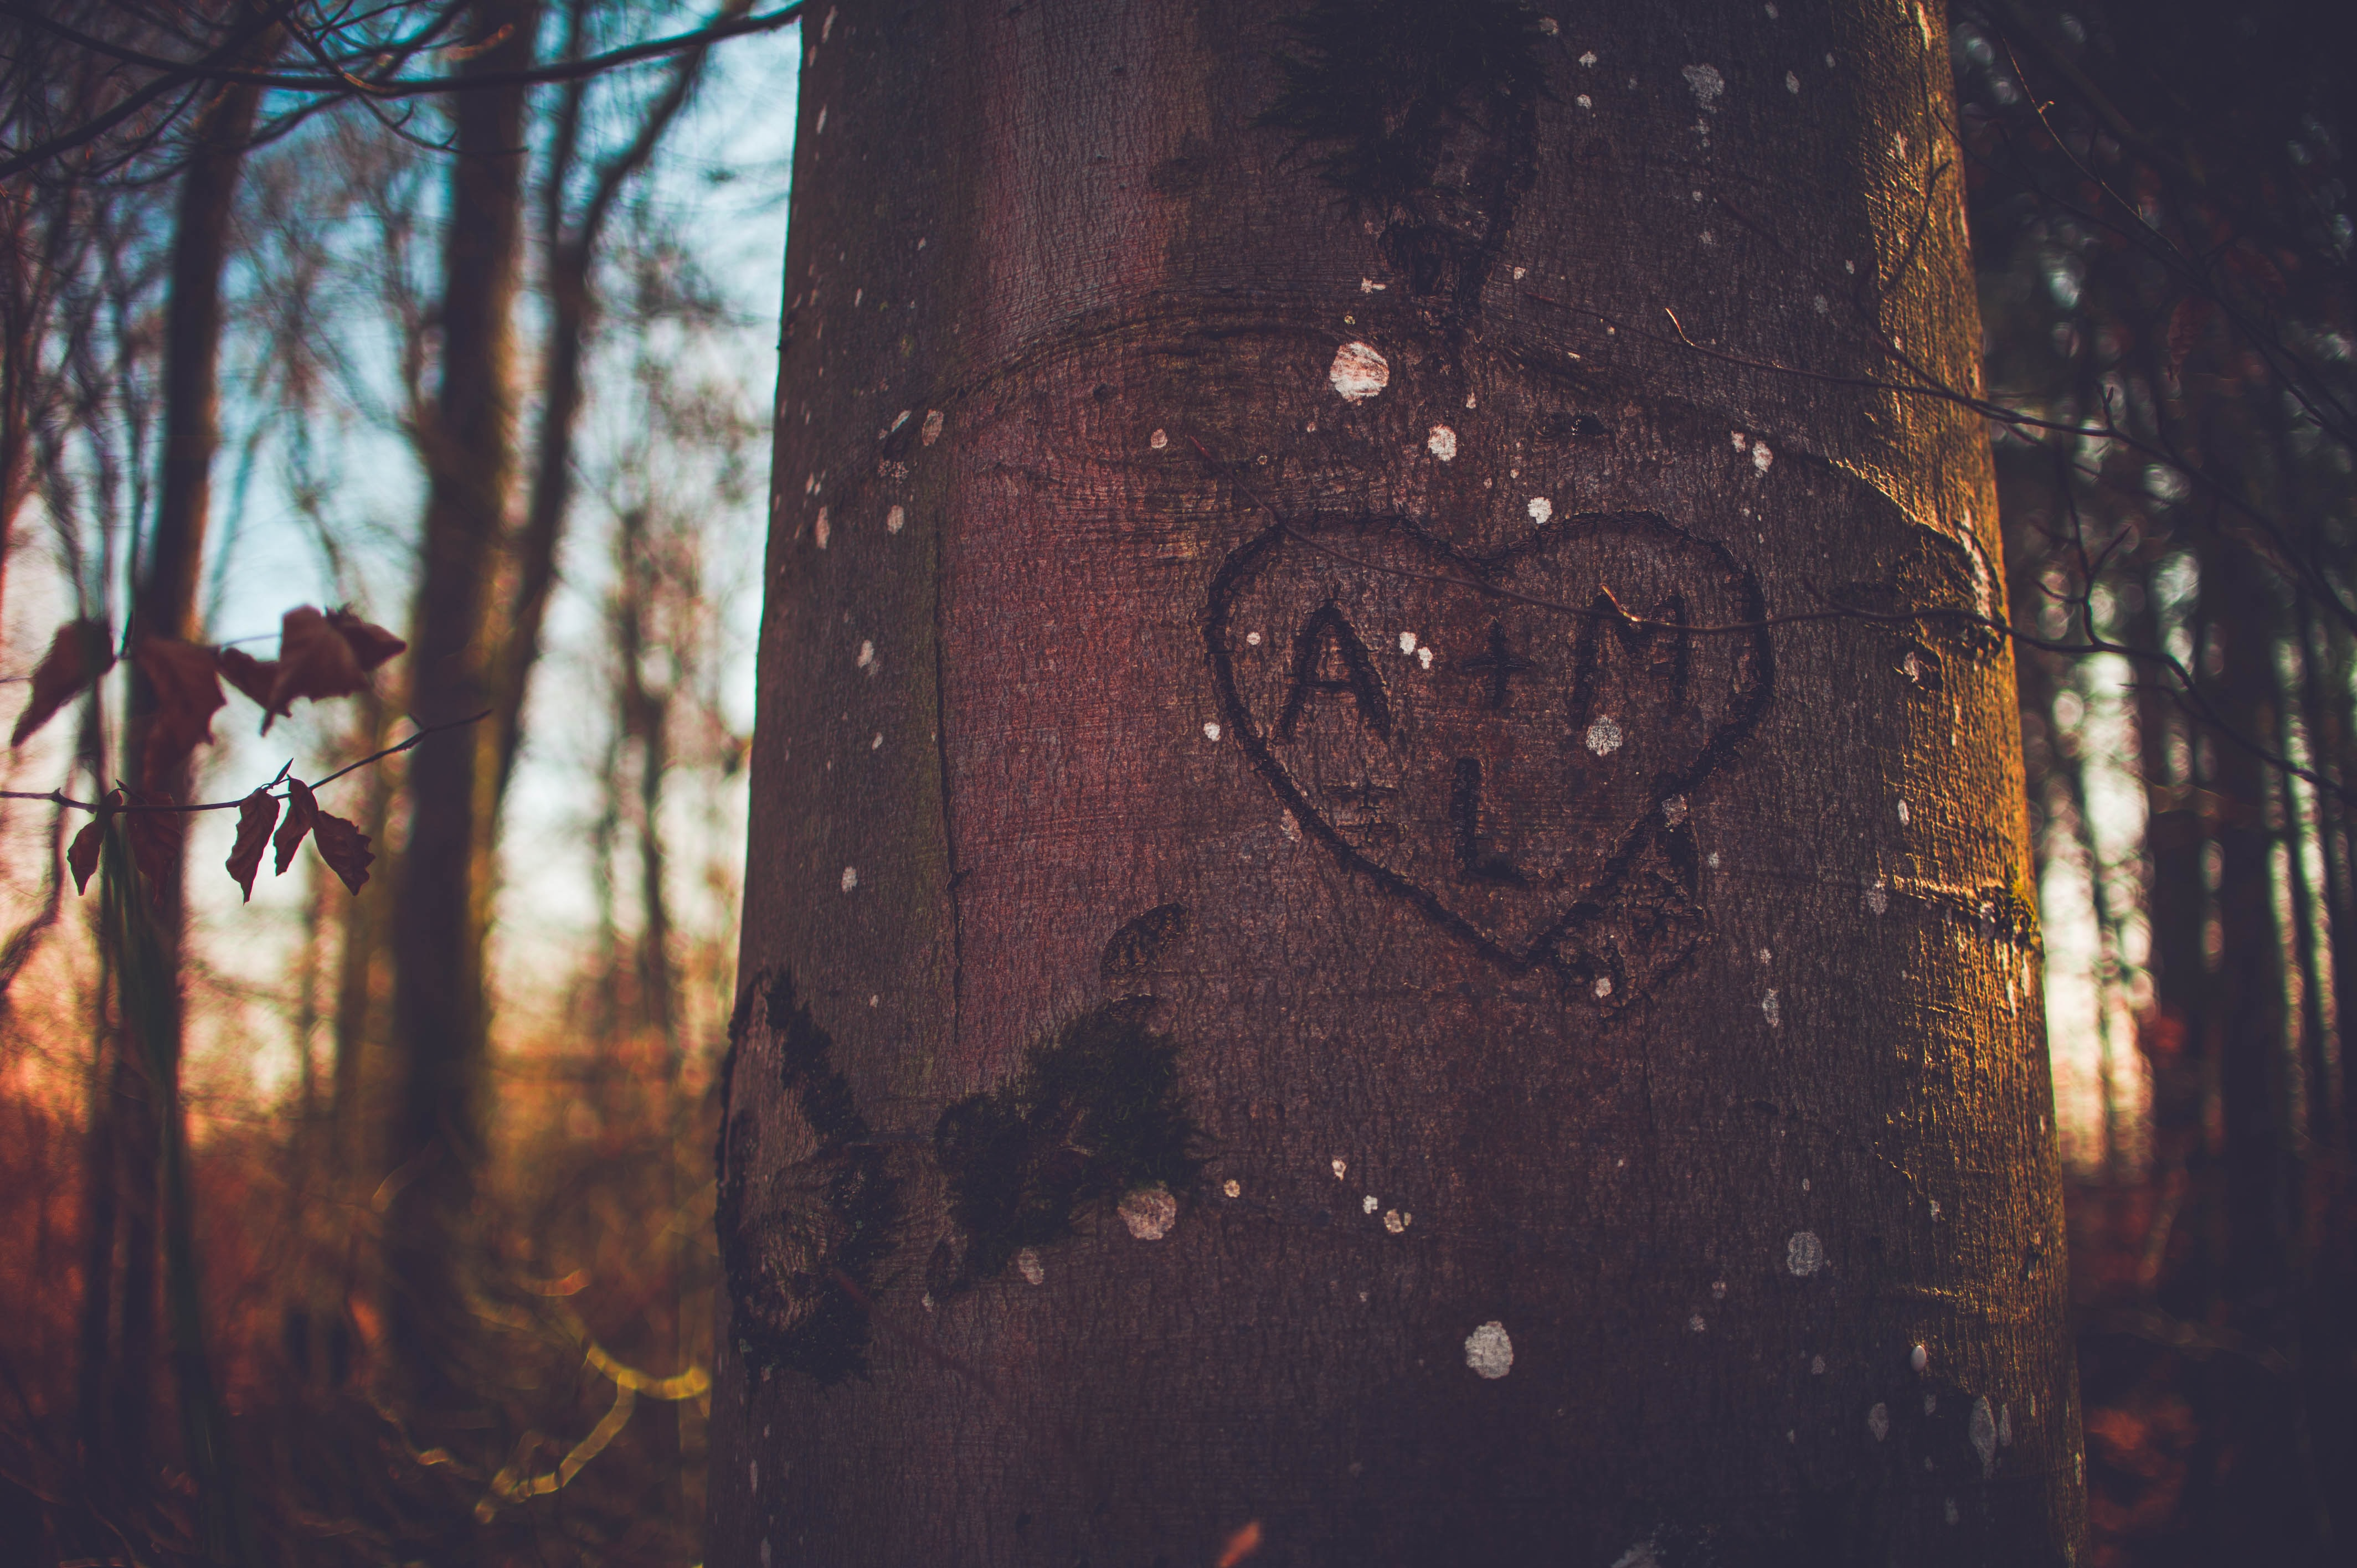 The initials A + M are etched in a heart on a tree trunk in the woods